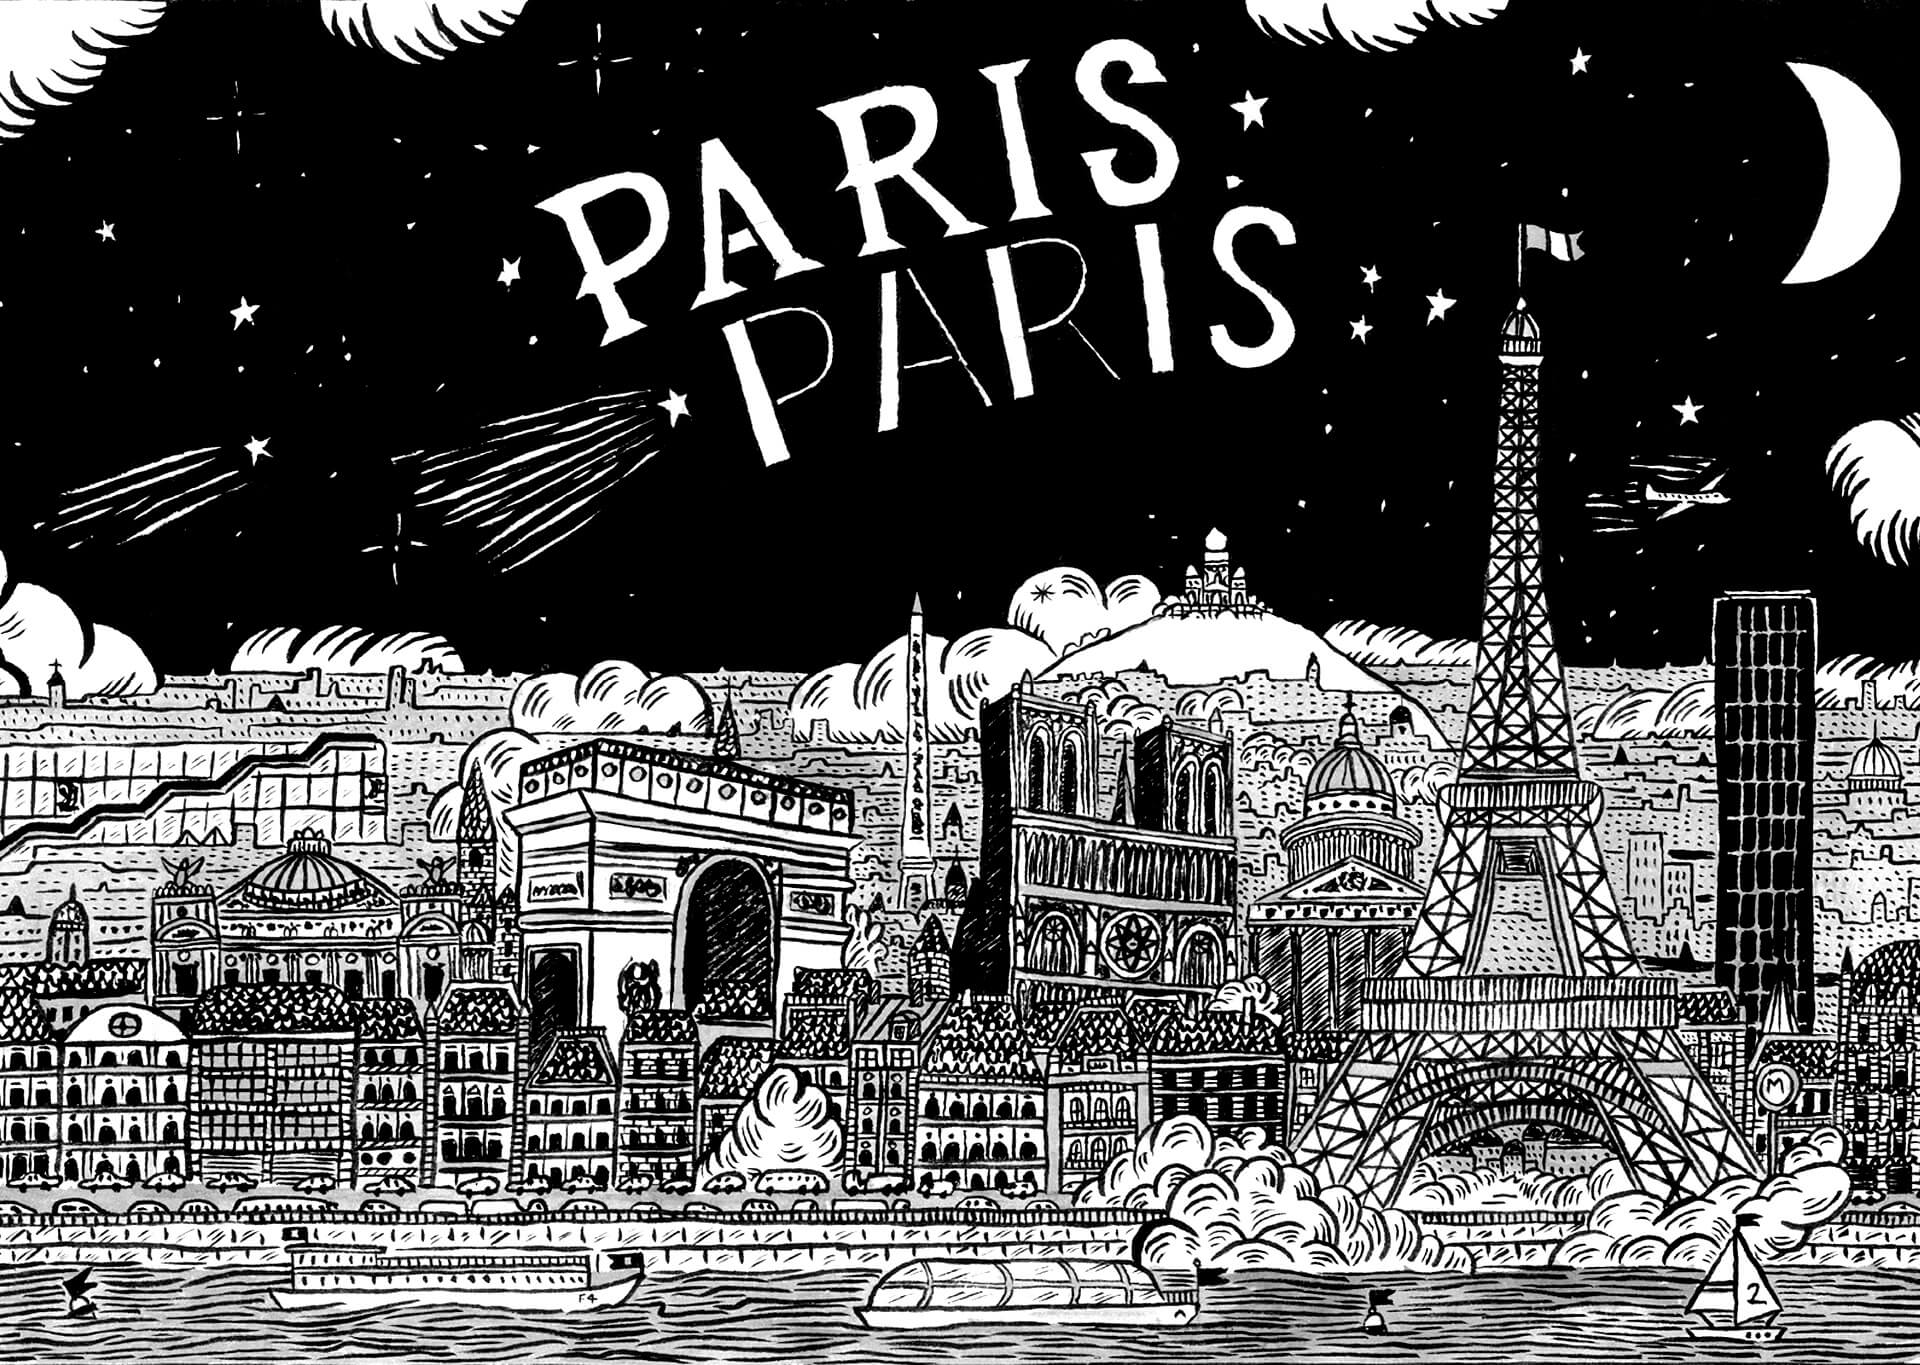 Paris Paris by Professor Inc